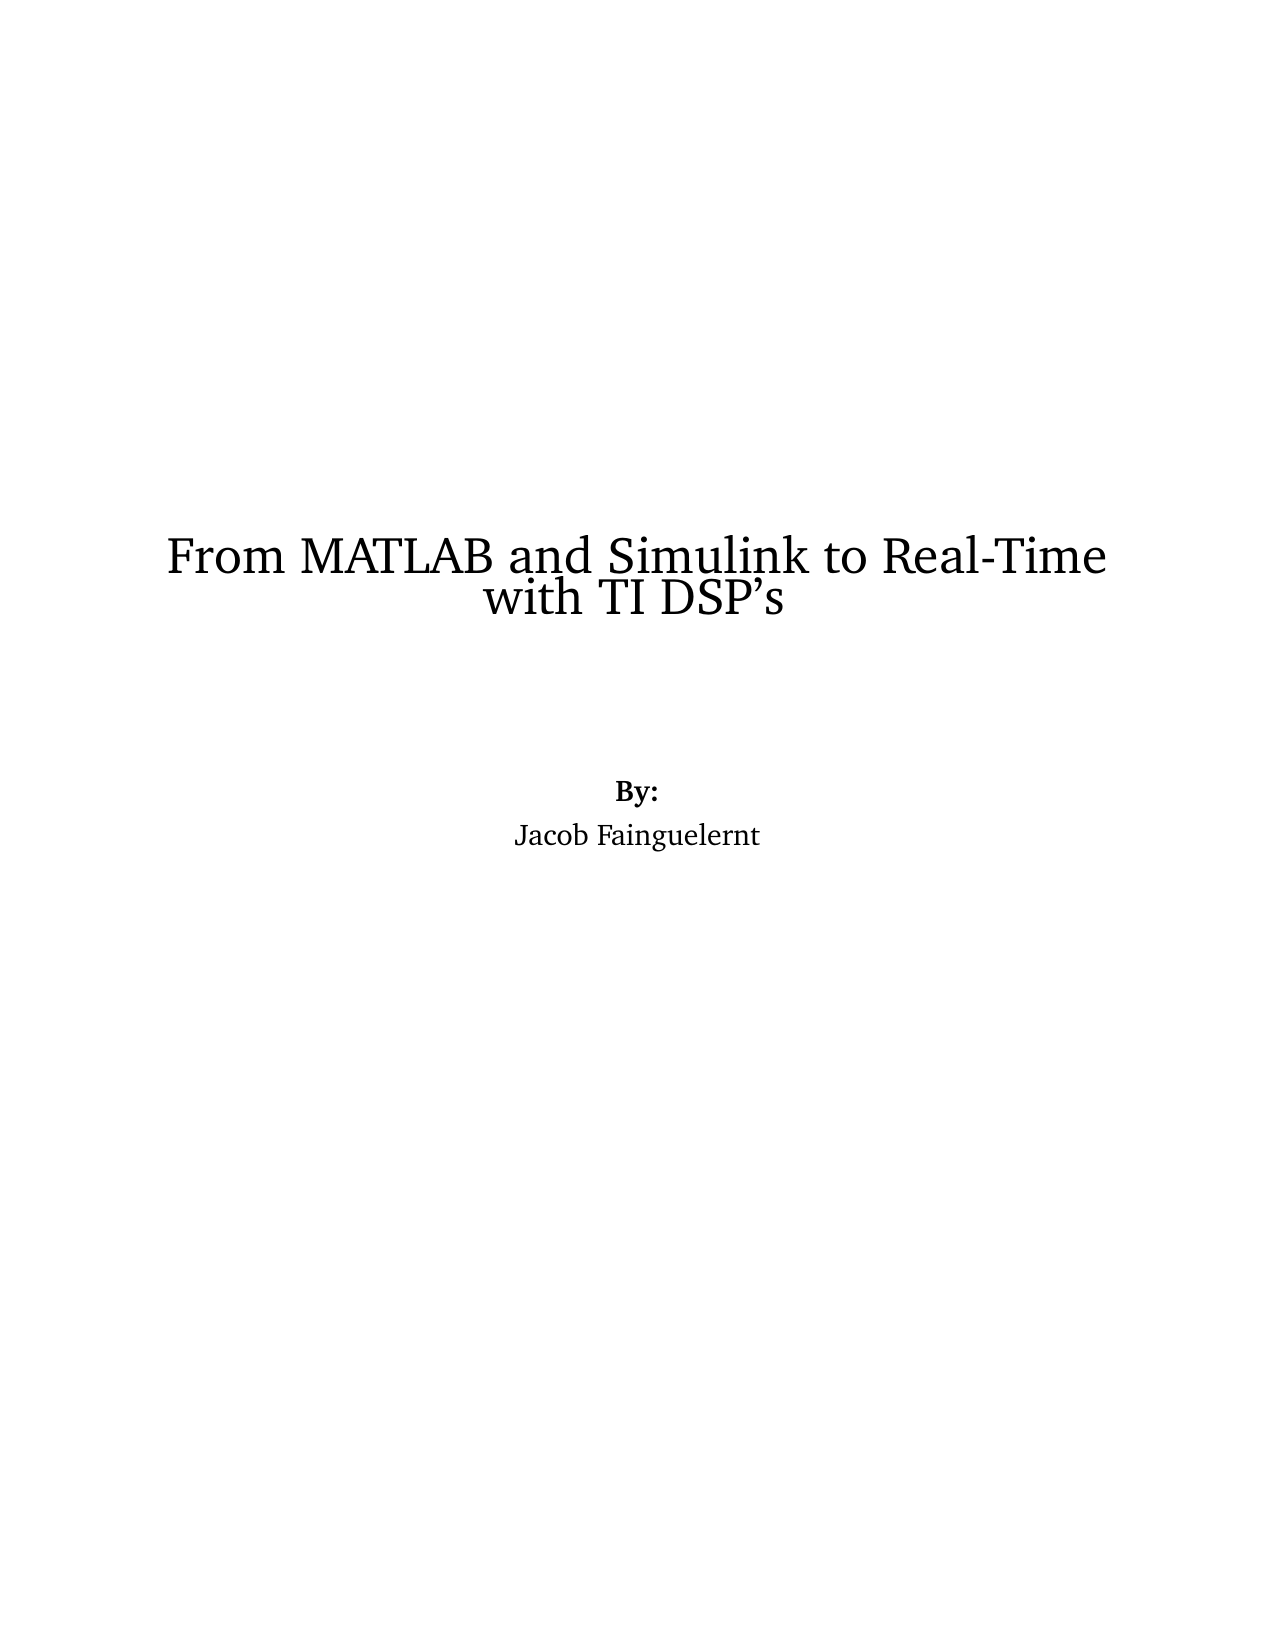 From MATLAB and Simulink to Real-Time with TI DSP's